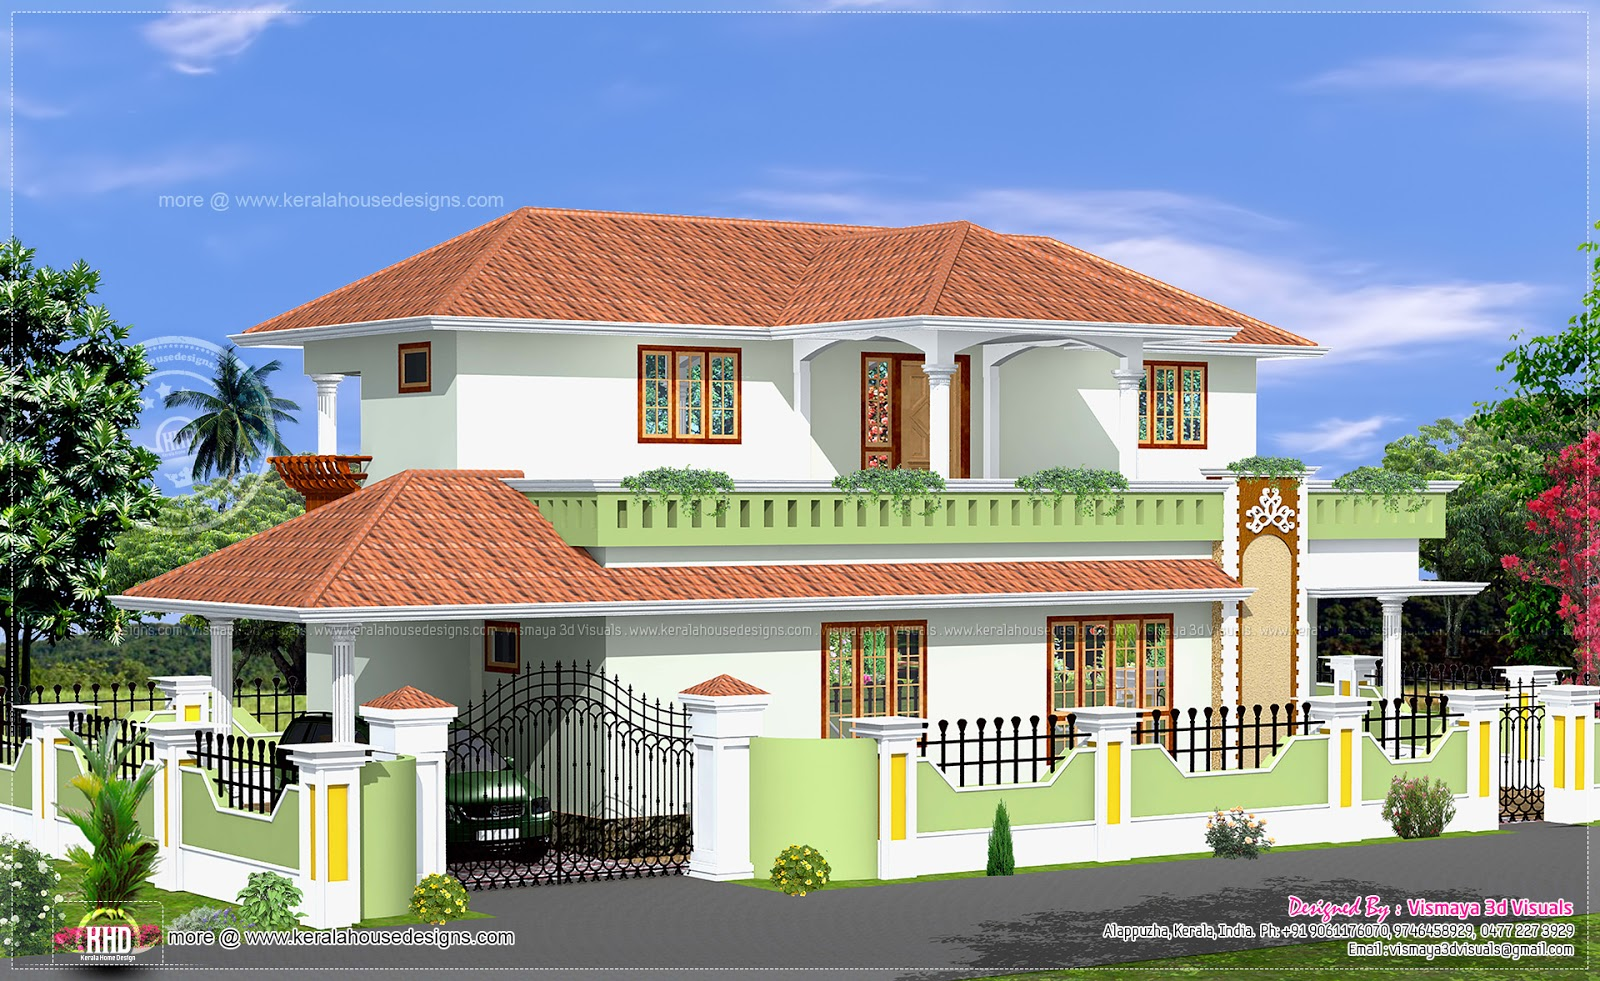 Simple house designs kerala style home design and style for Home style photo